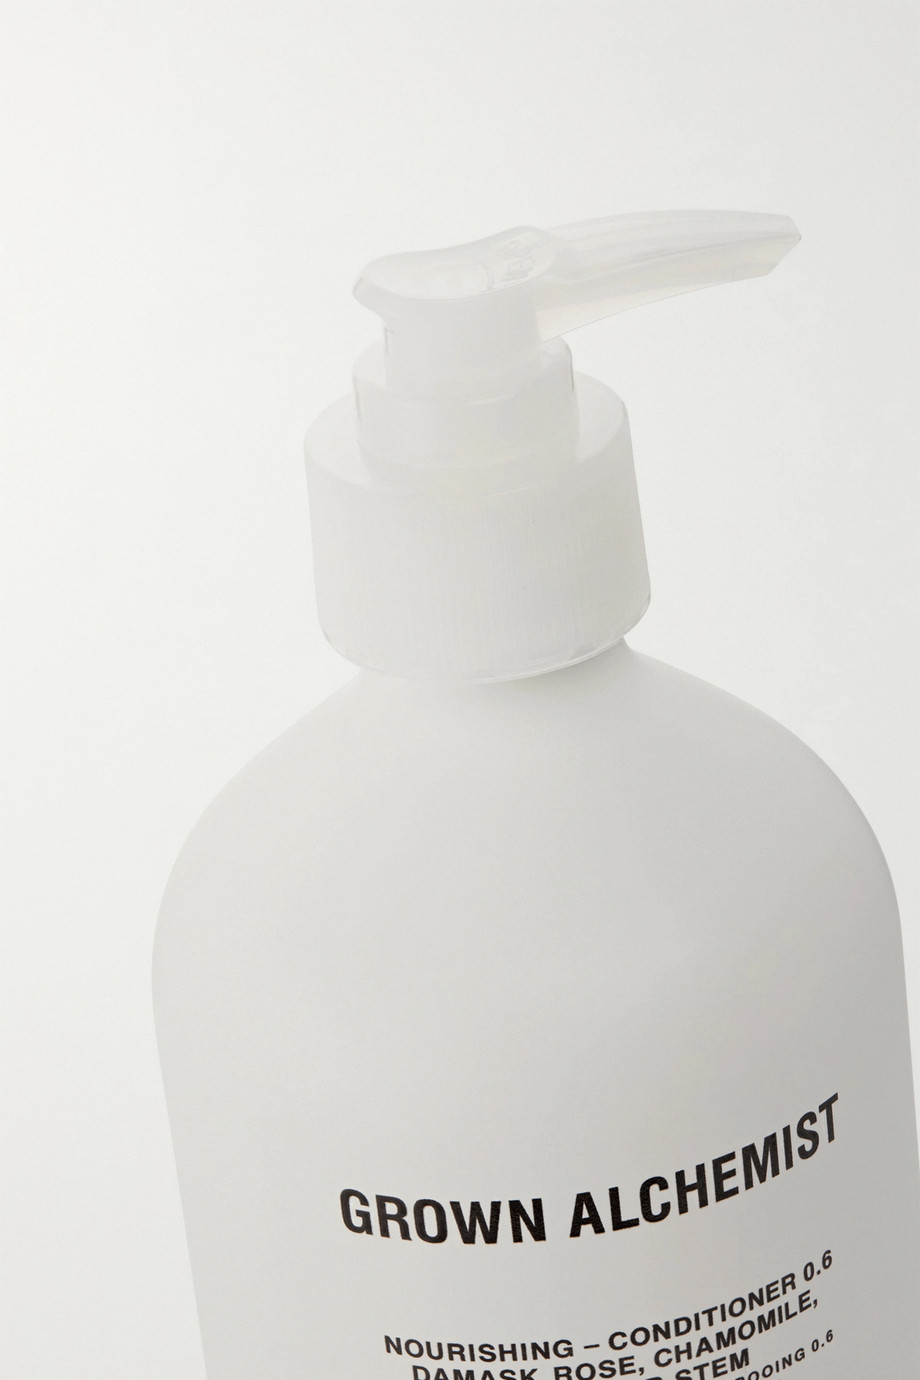 Grown Alchemist Nourishing - Conditioner 0.6, 500ml